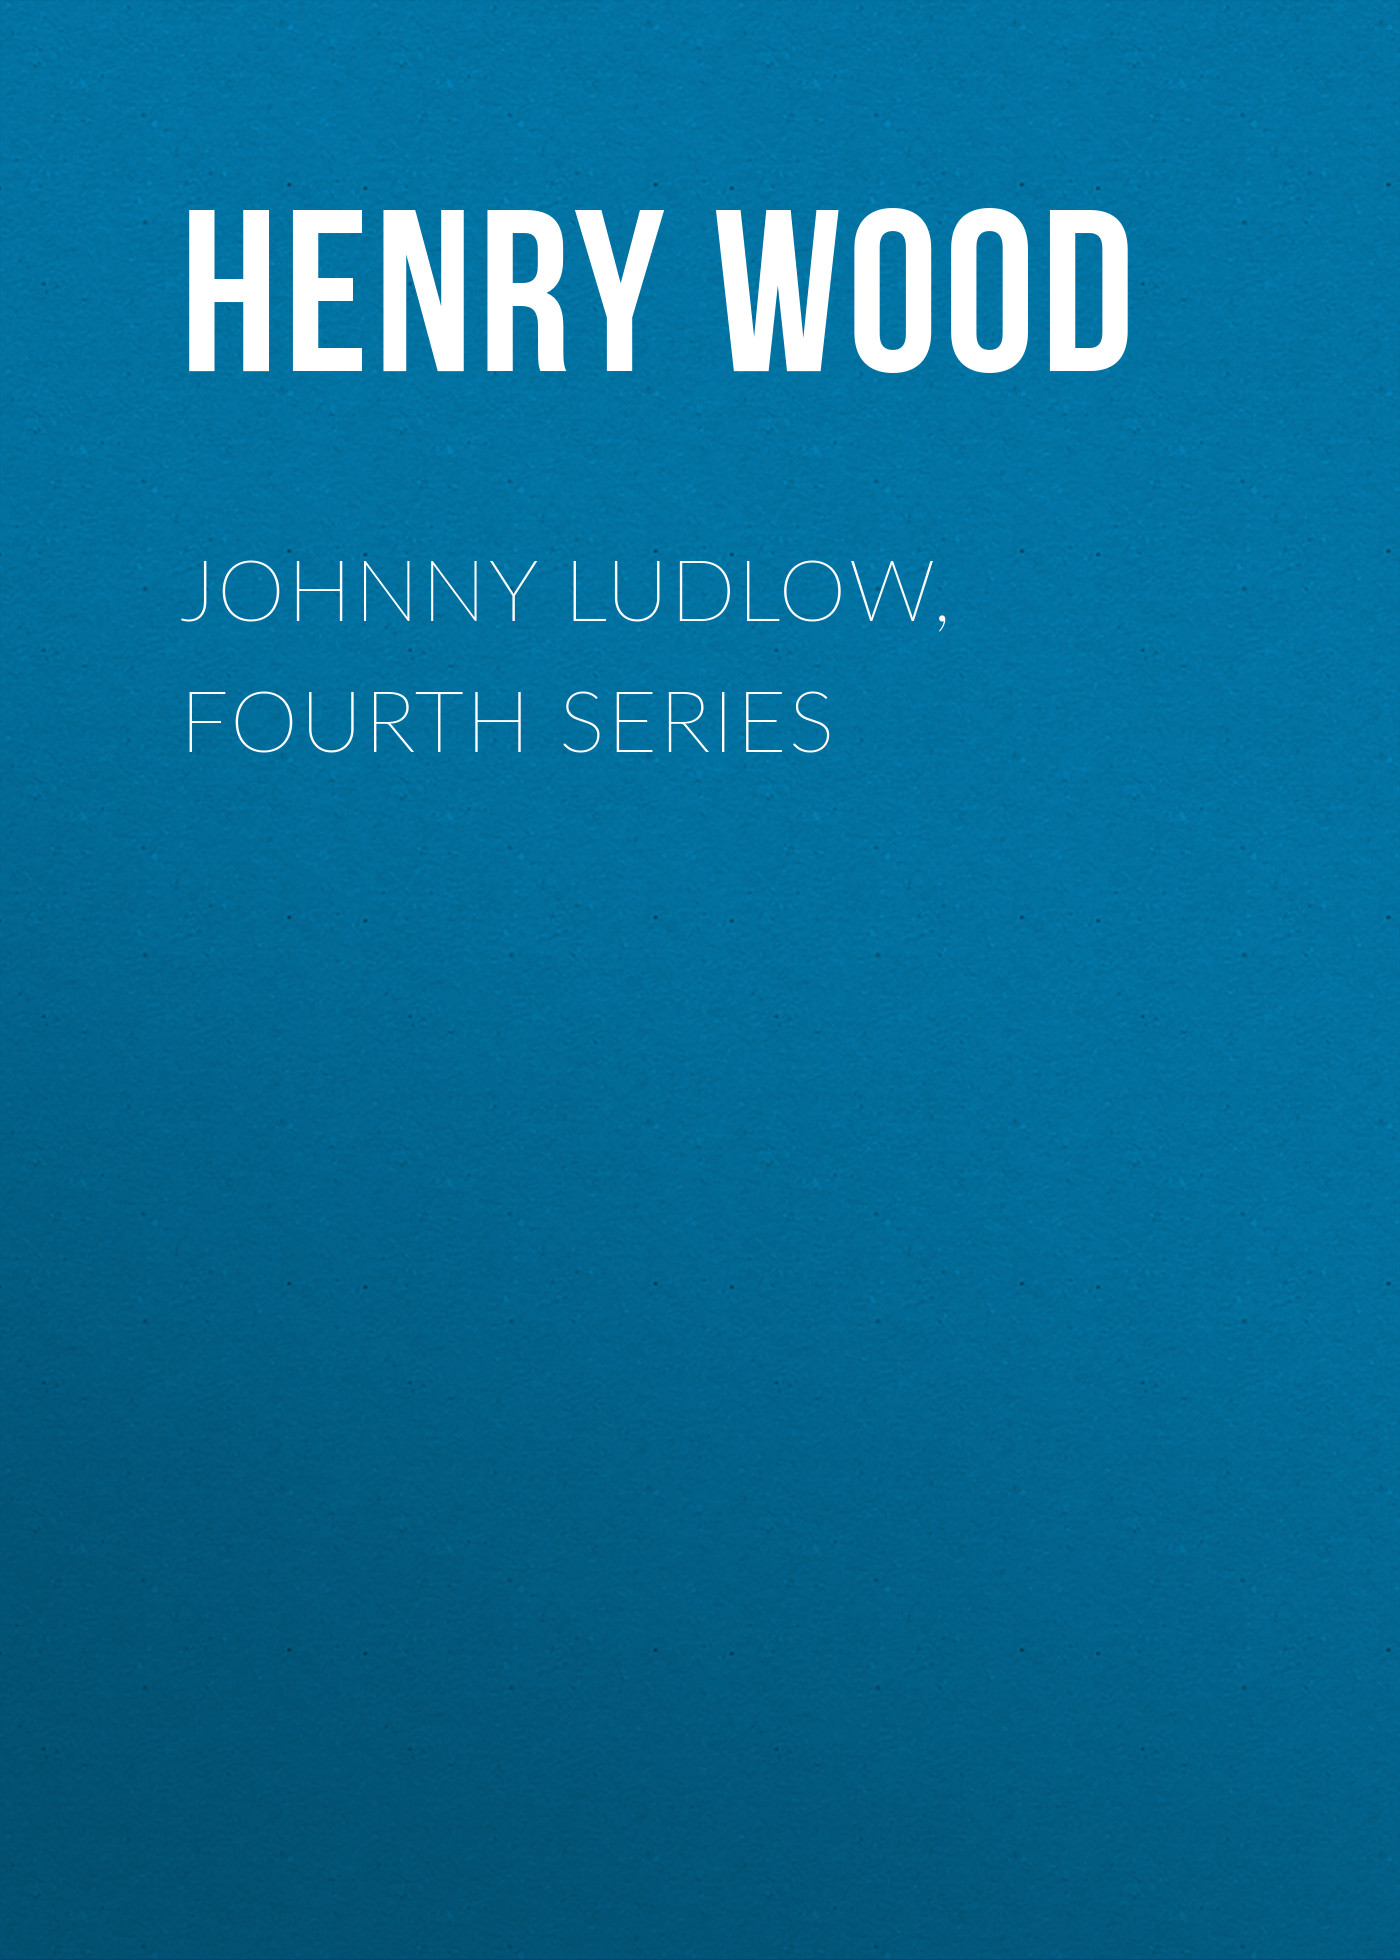 лучшая цена Henry Wood Johnny Ludlow, Fourth Series